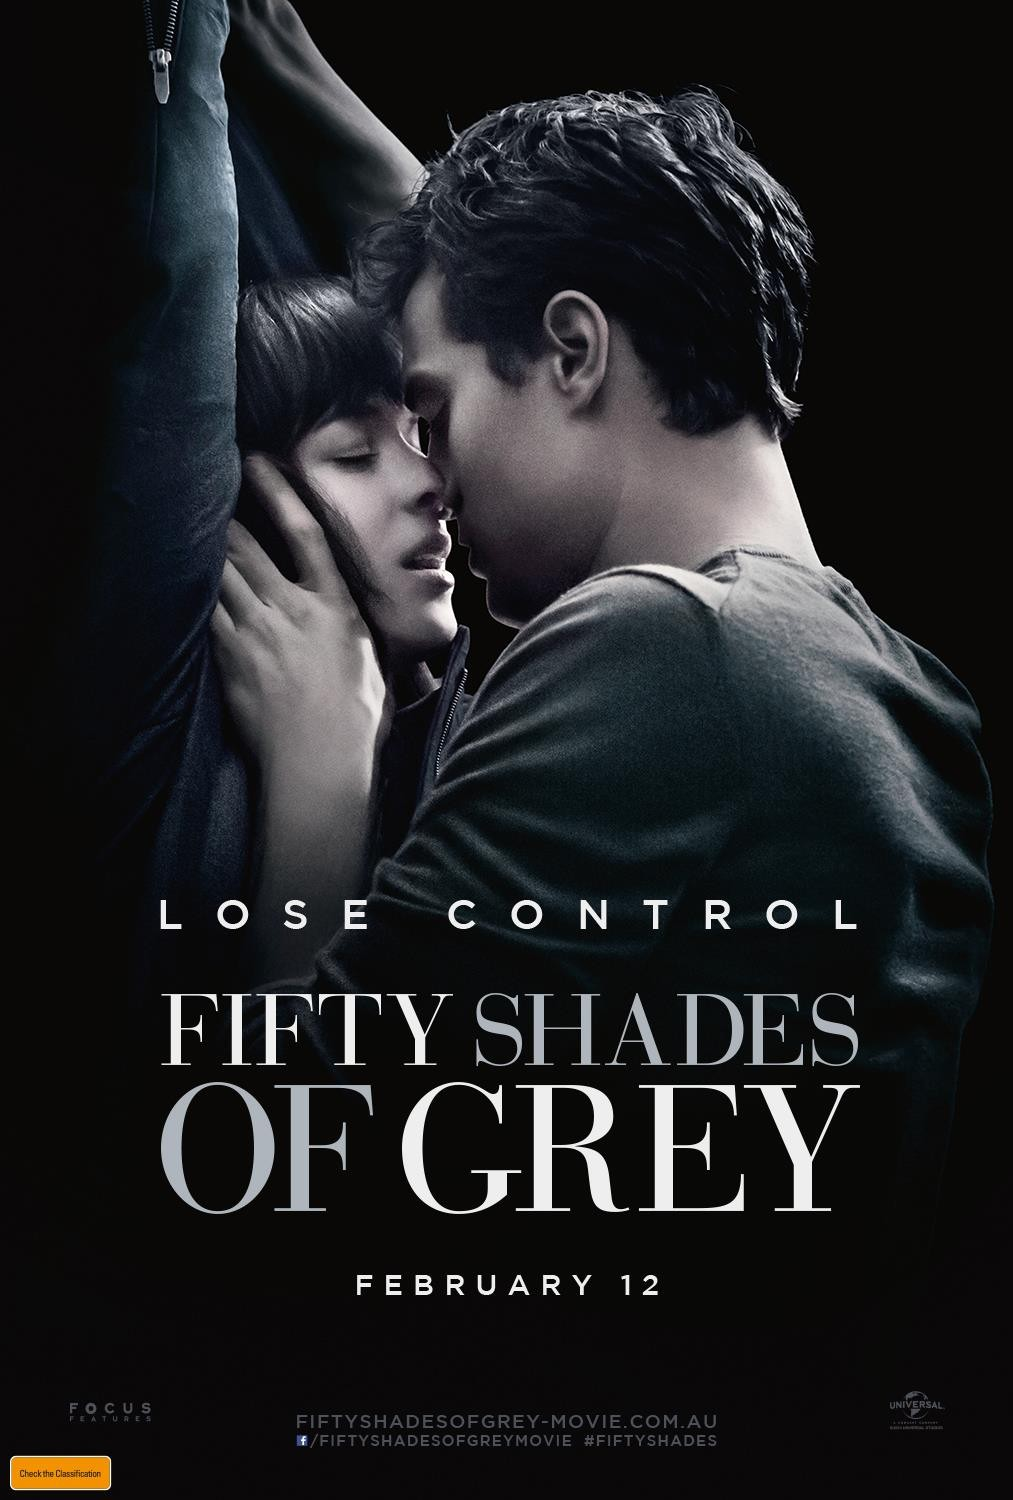 Fifty Shades of Grey-Official Poster Banner XXLG-14NOVEMBRO2014-01